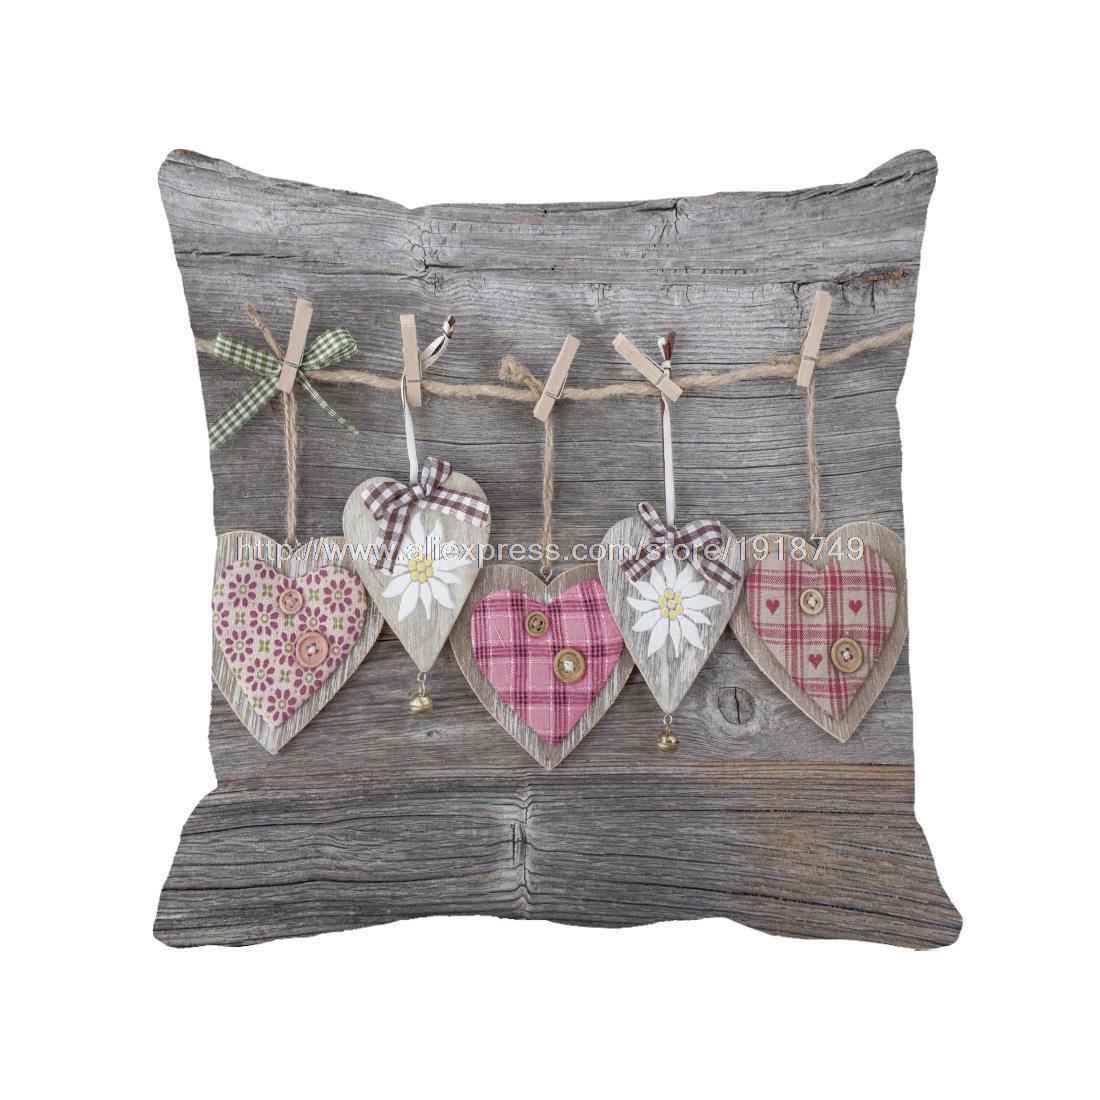 wooden chair cushion covers outdoor rattan hanging various heart shape printed wedding home decorative